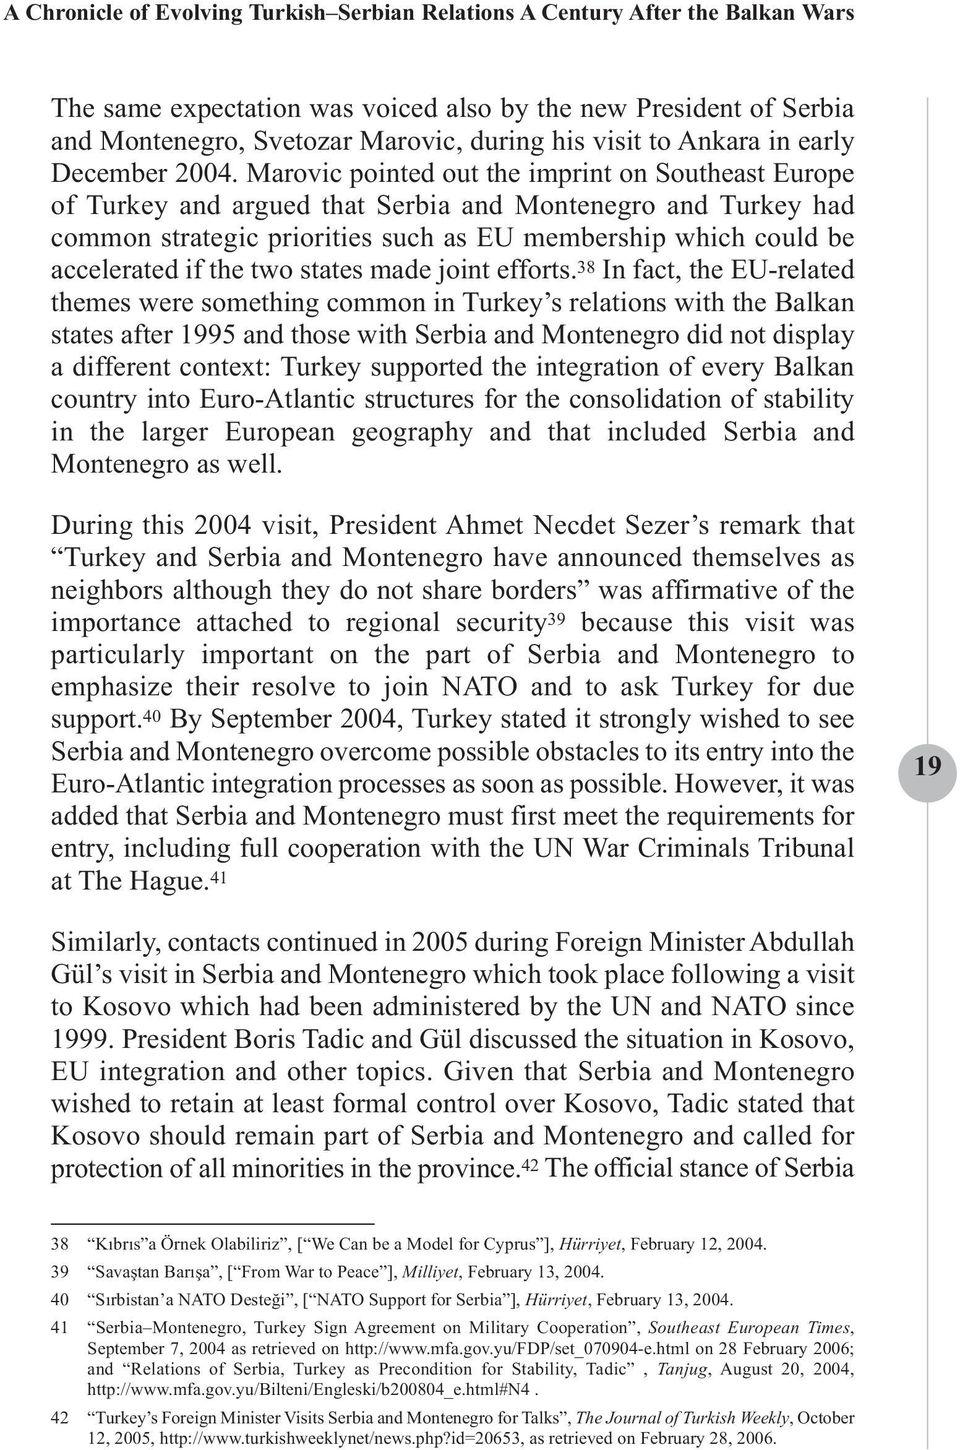 Marovic pointed out the imprint on Southeast Europe of Turkey and argued that Serbia and Montenegro and Turkey had common strategic priorities such as EU membership which could be accelerated if the